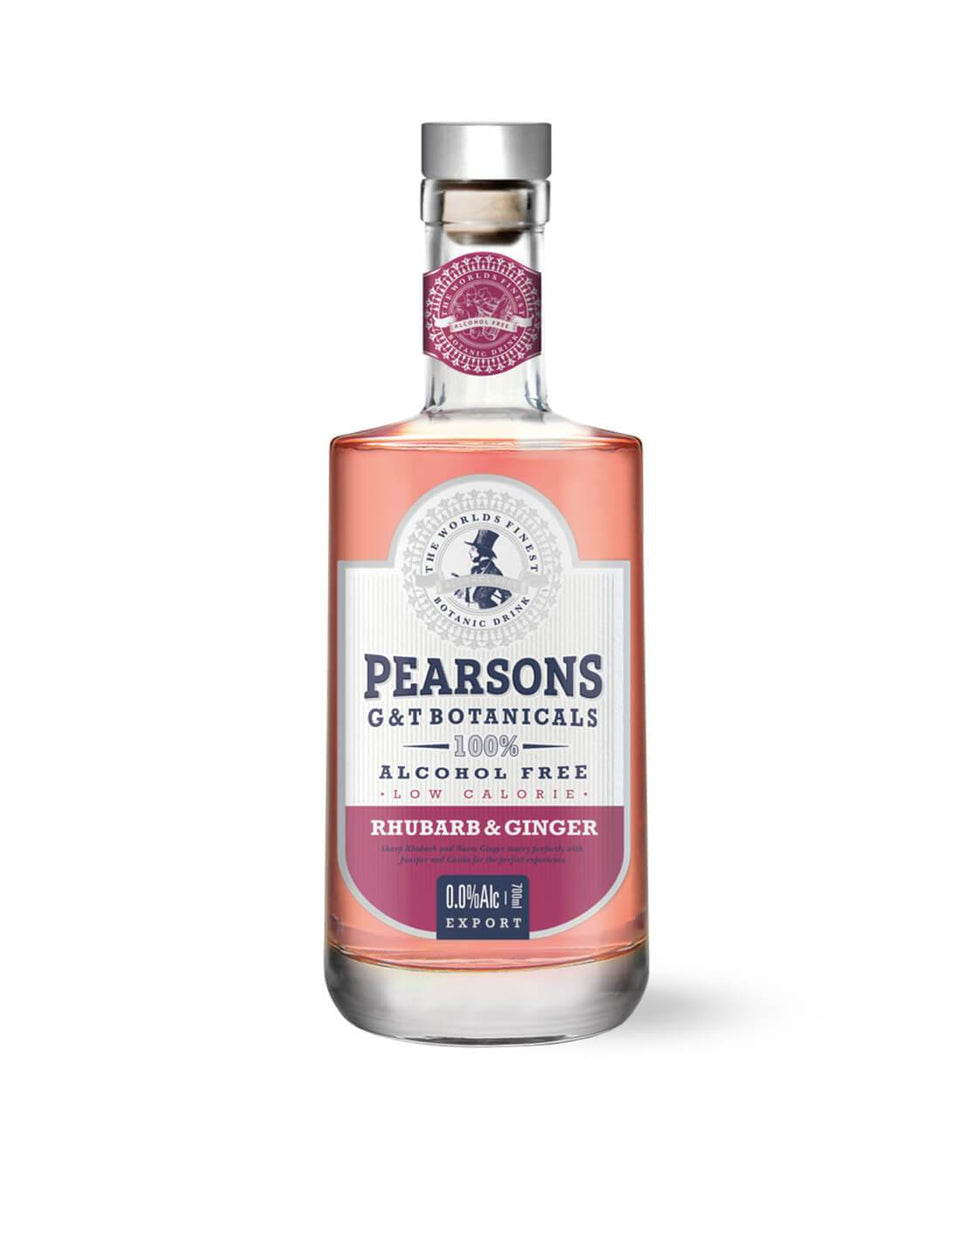 Pearsons G&T Botanicals Alcohol-Free Rhubarb & Ginger 700mL